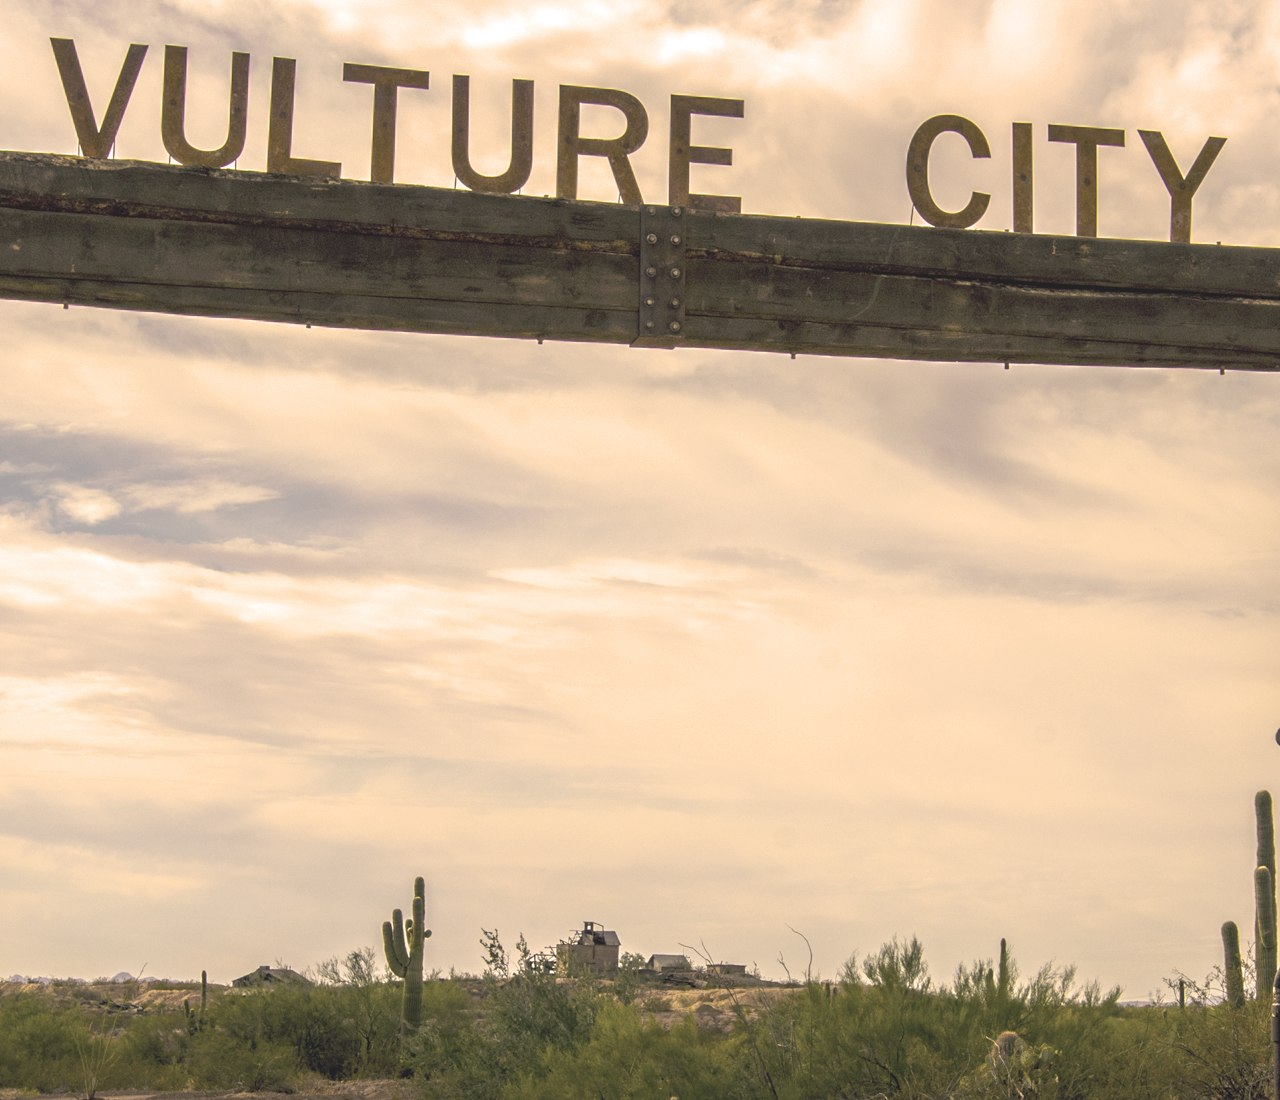 Vulture City - ghost town